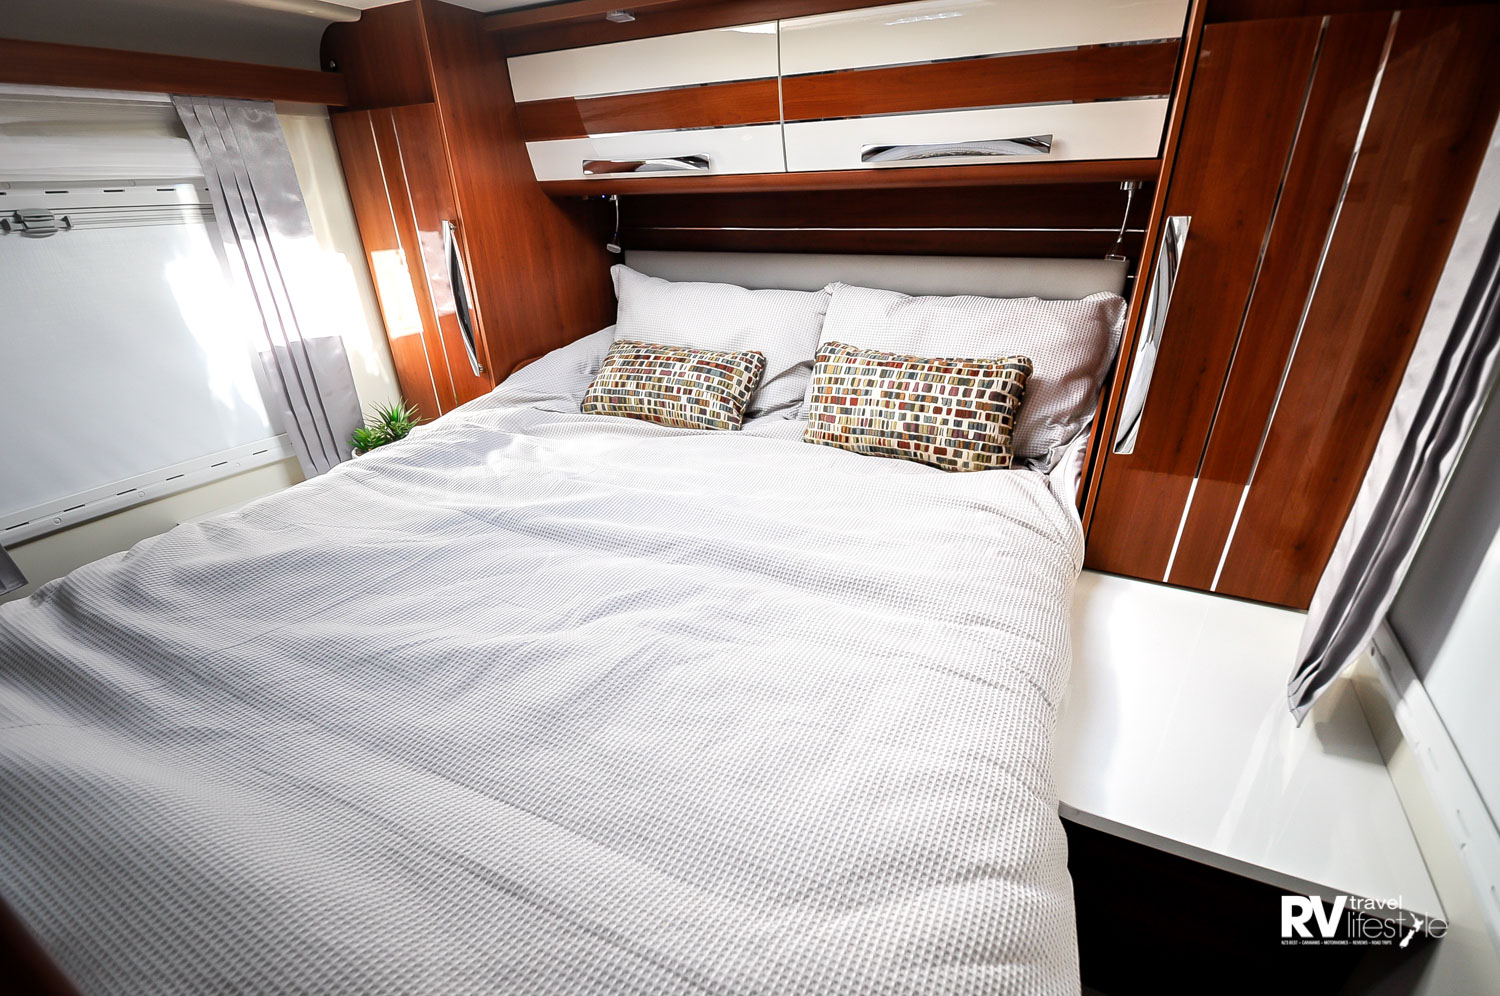 The K-Yacht 79 has the separate bedroom with the bathroom midship